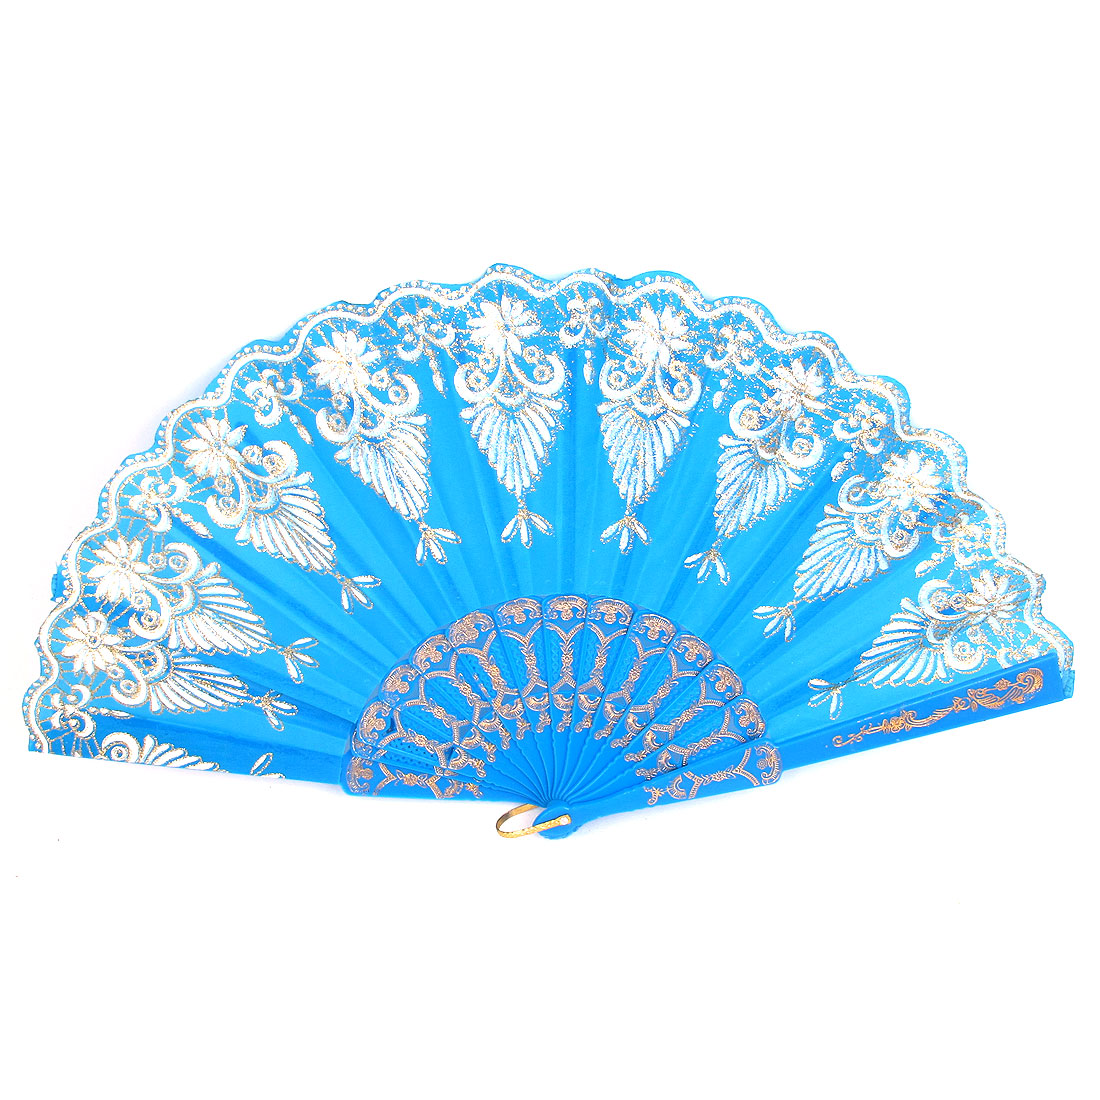 Lady Glittery Powder Decor Floral Printed Wave Edge Foldable Hand Fan Blue